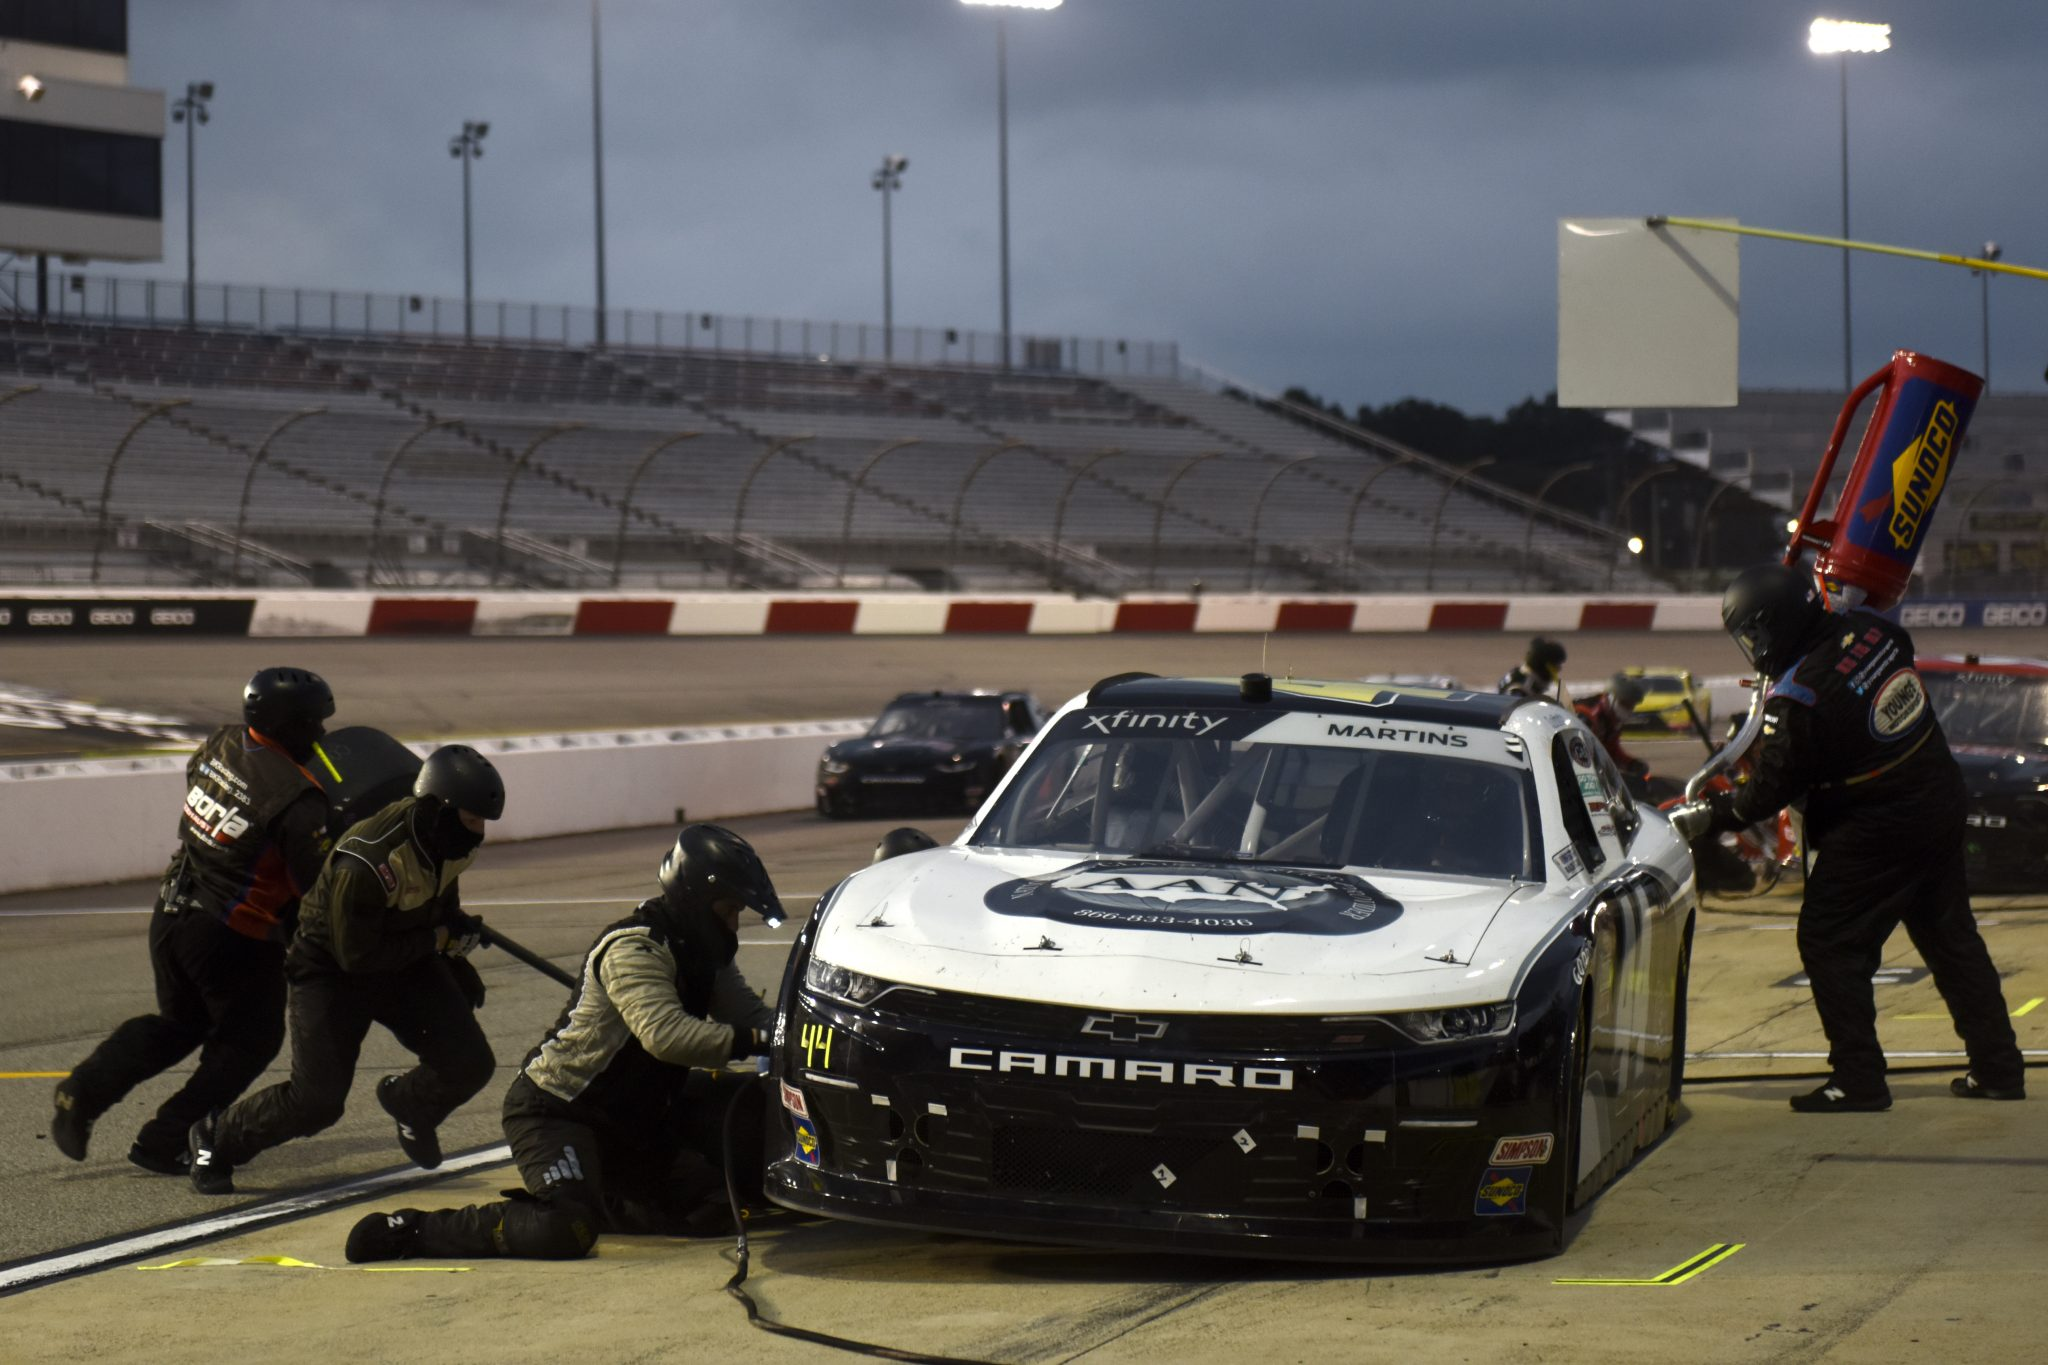 RICHMOND, VIRGINIA - SEPTEMBER 11: Tommy Joe Martins, driver of the #44 Gilreath Farms Red Angus Chevrolet, pits during the NASCAR Xfinity Series Go Bowling 250 at Richmond Raceway on September 11, 2020 in Richmond, Virginia. (Photo by Jared C. Tilton/Getty Images) | Getty Images